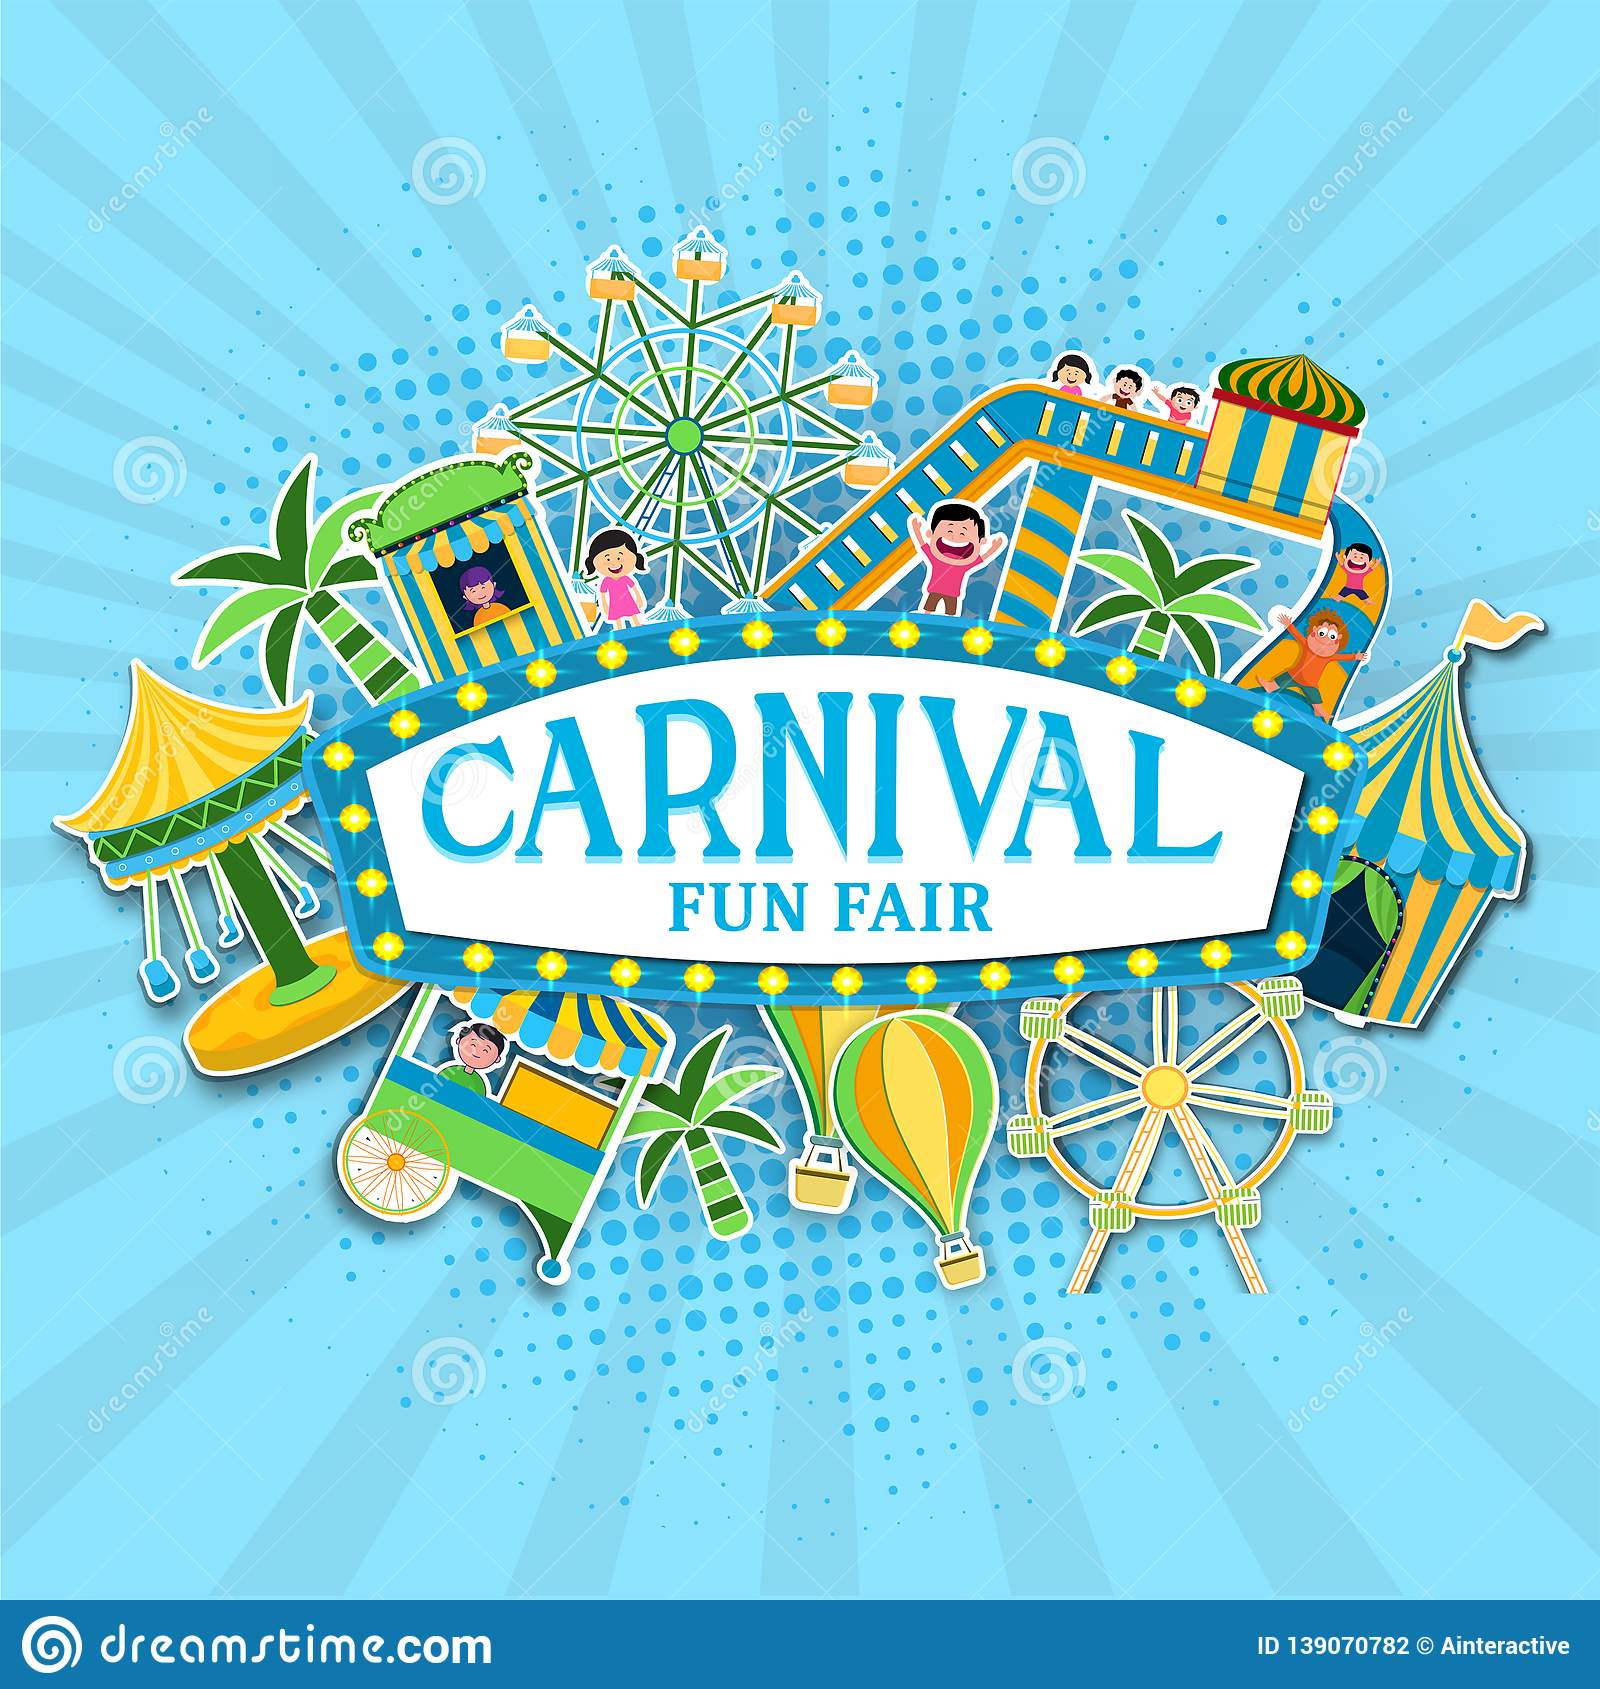 Carnival Fun Fair celebration background with sticker style tent house, ferris wheel, carousels.